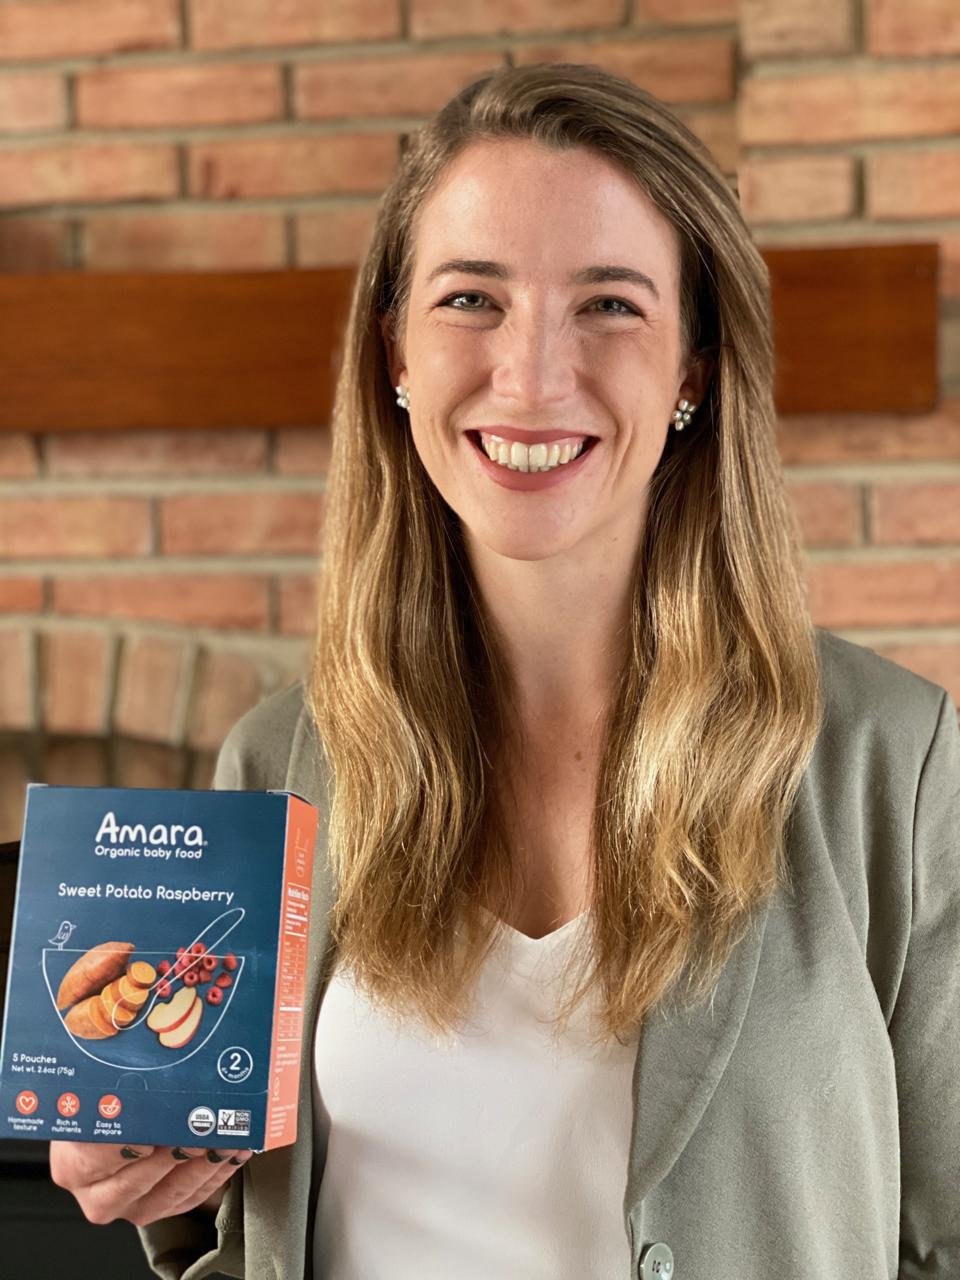 Amara Organic Baby Food founder and CEO Jessica Sturzenegger